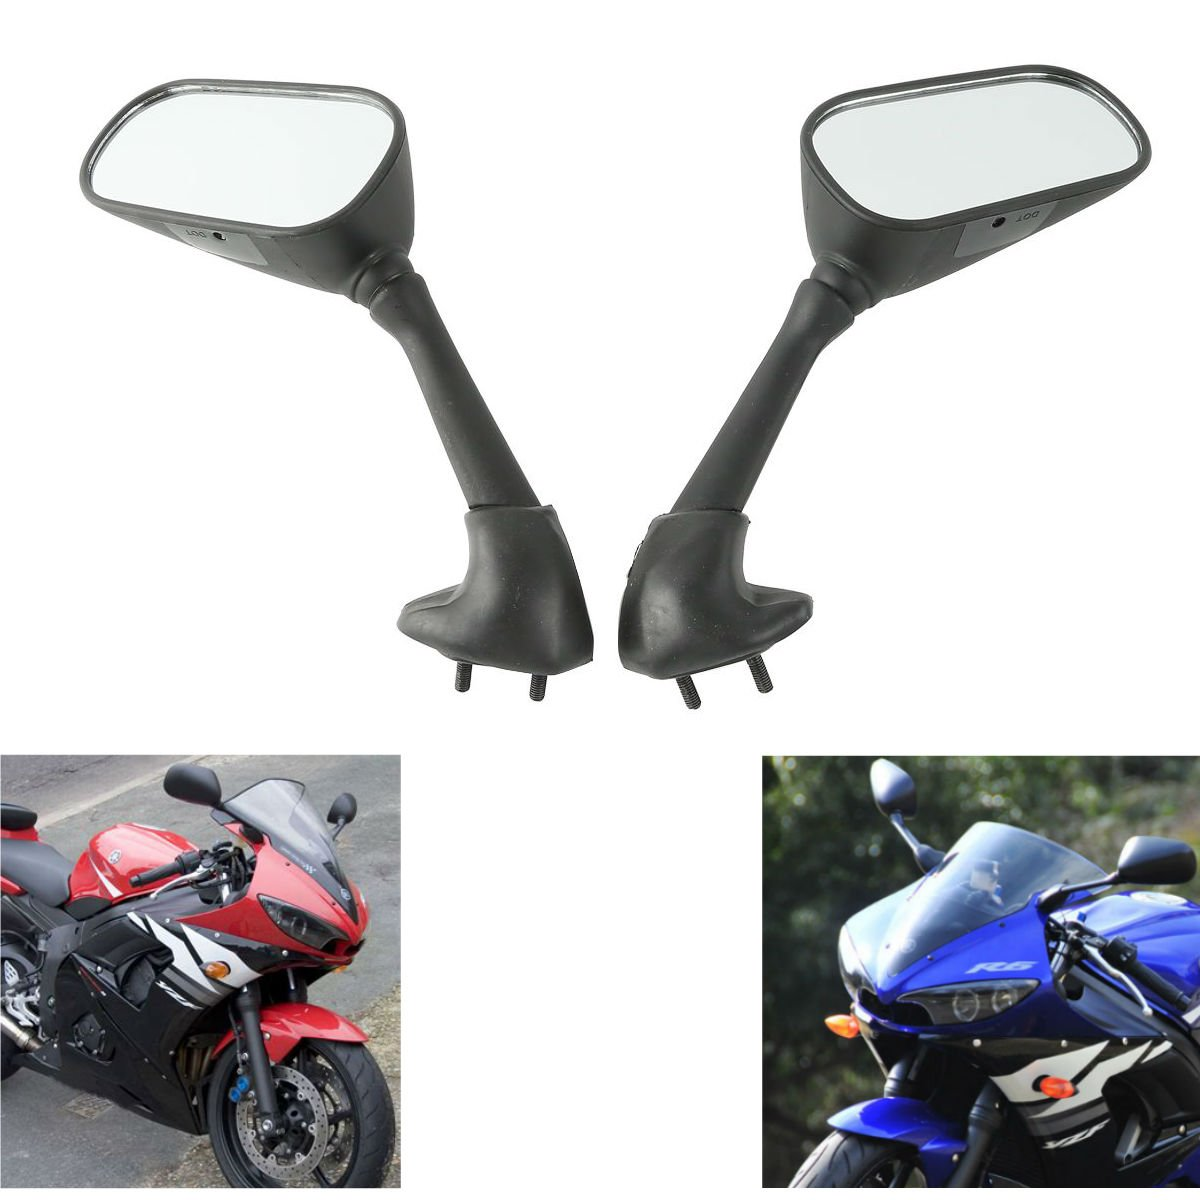 MZS Motorcycle Rear View Mirrors for Yamaha YZF R1 1998-2008, YZF R6 1998-2007 RN01 RN04 RN09 RN12 RJ03 RJ05 RJ09 RJ11